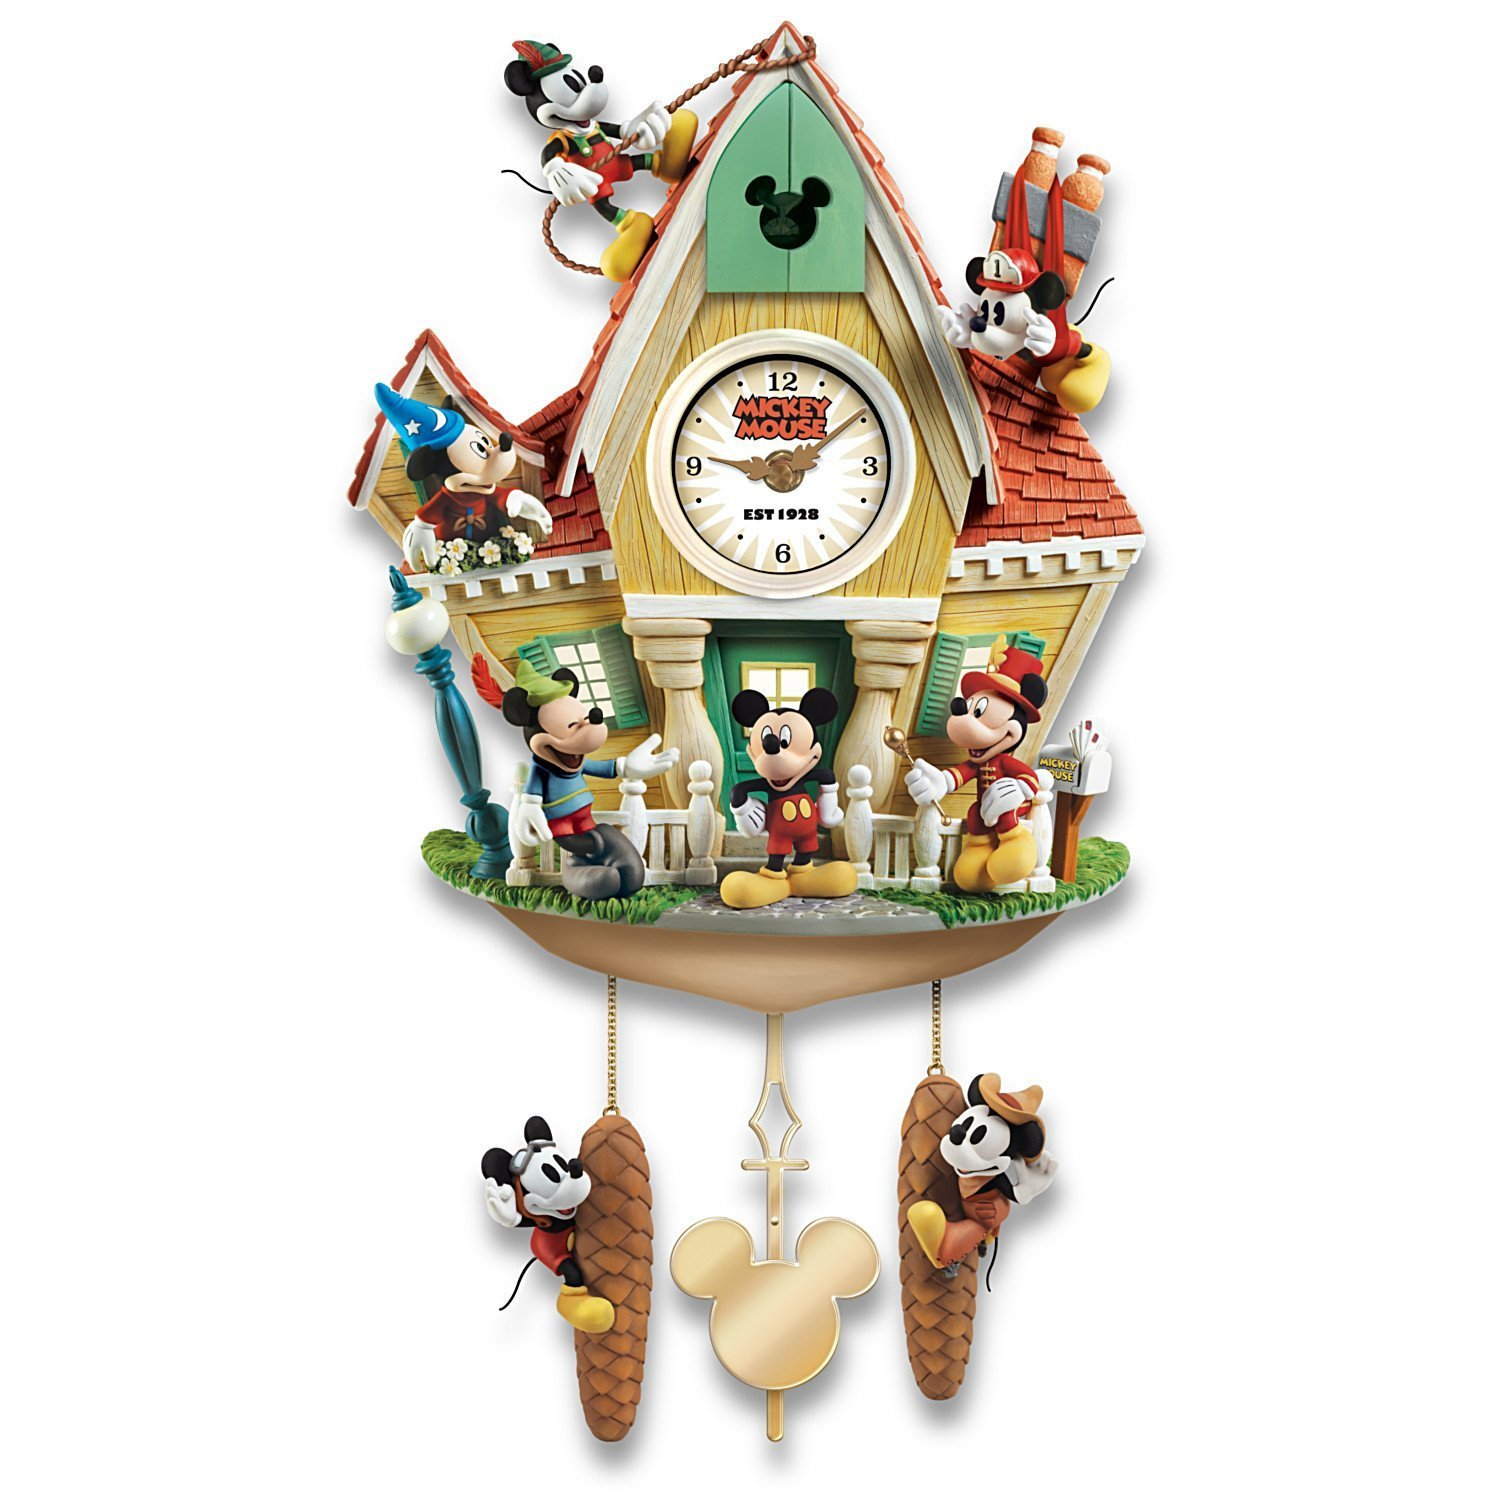 Disney Mickey Mouse Through The Years Cuckoo Clock With Lights Music And Motion by The Bradford Exchange by Bradford Exchange